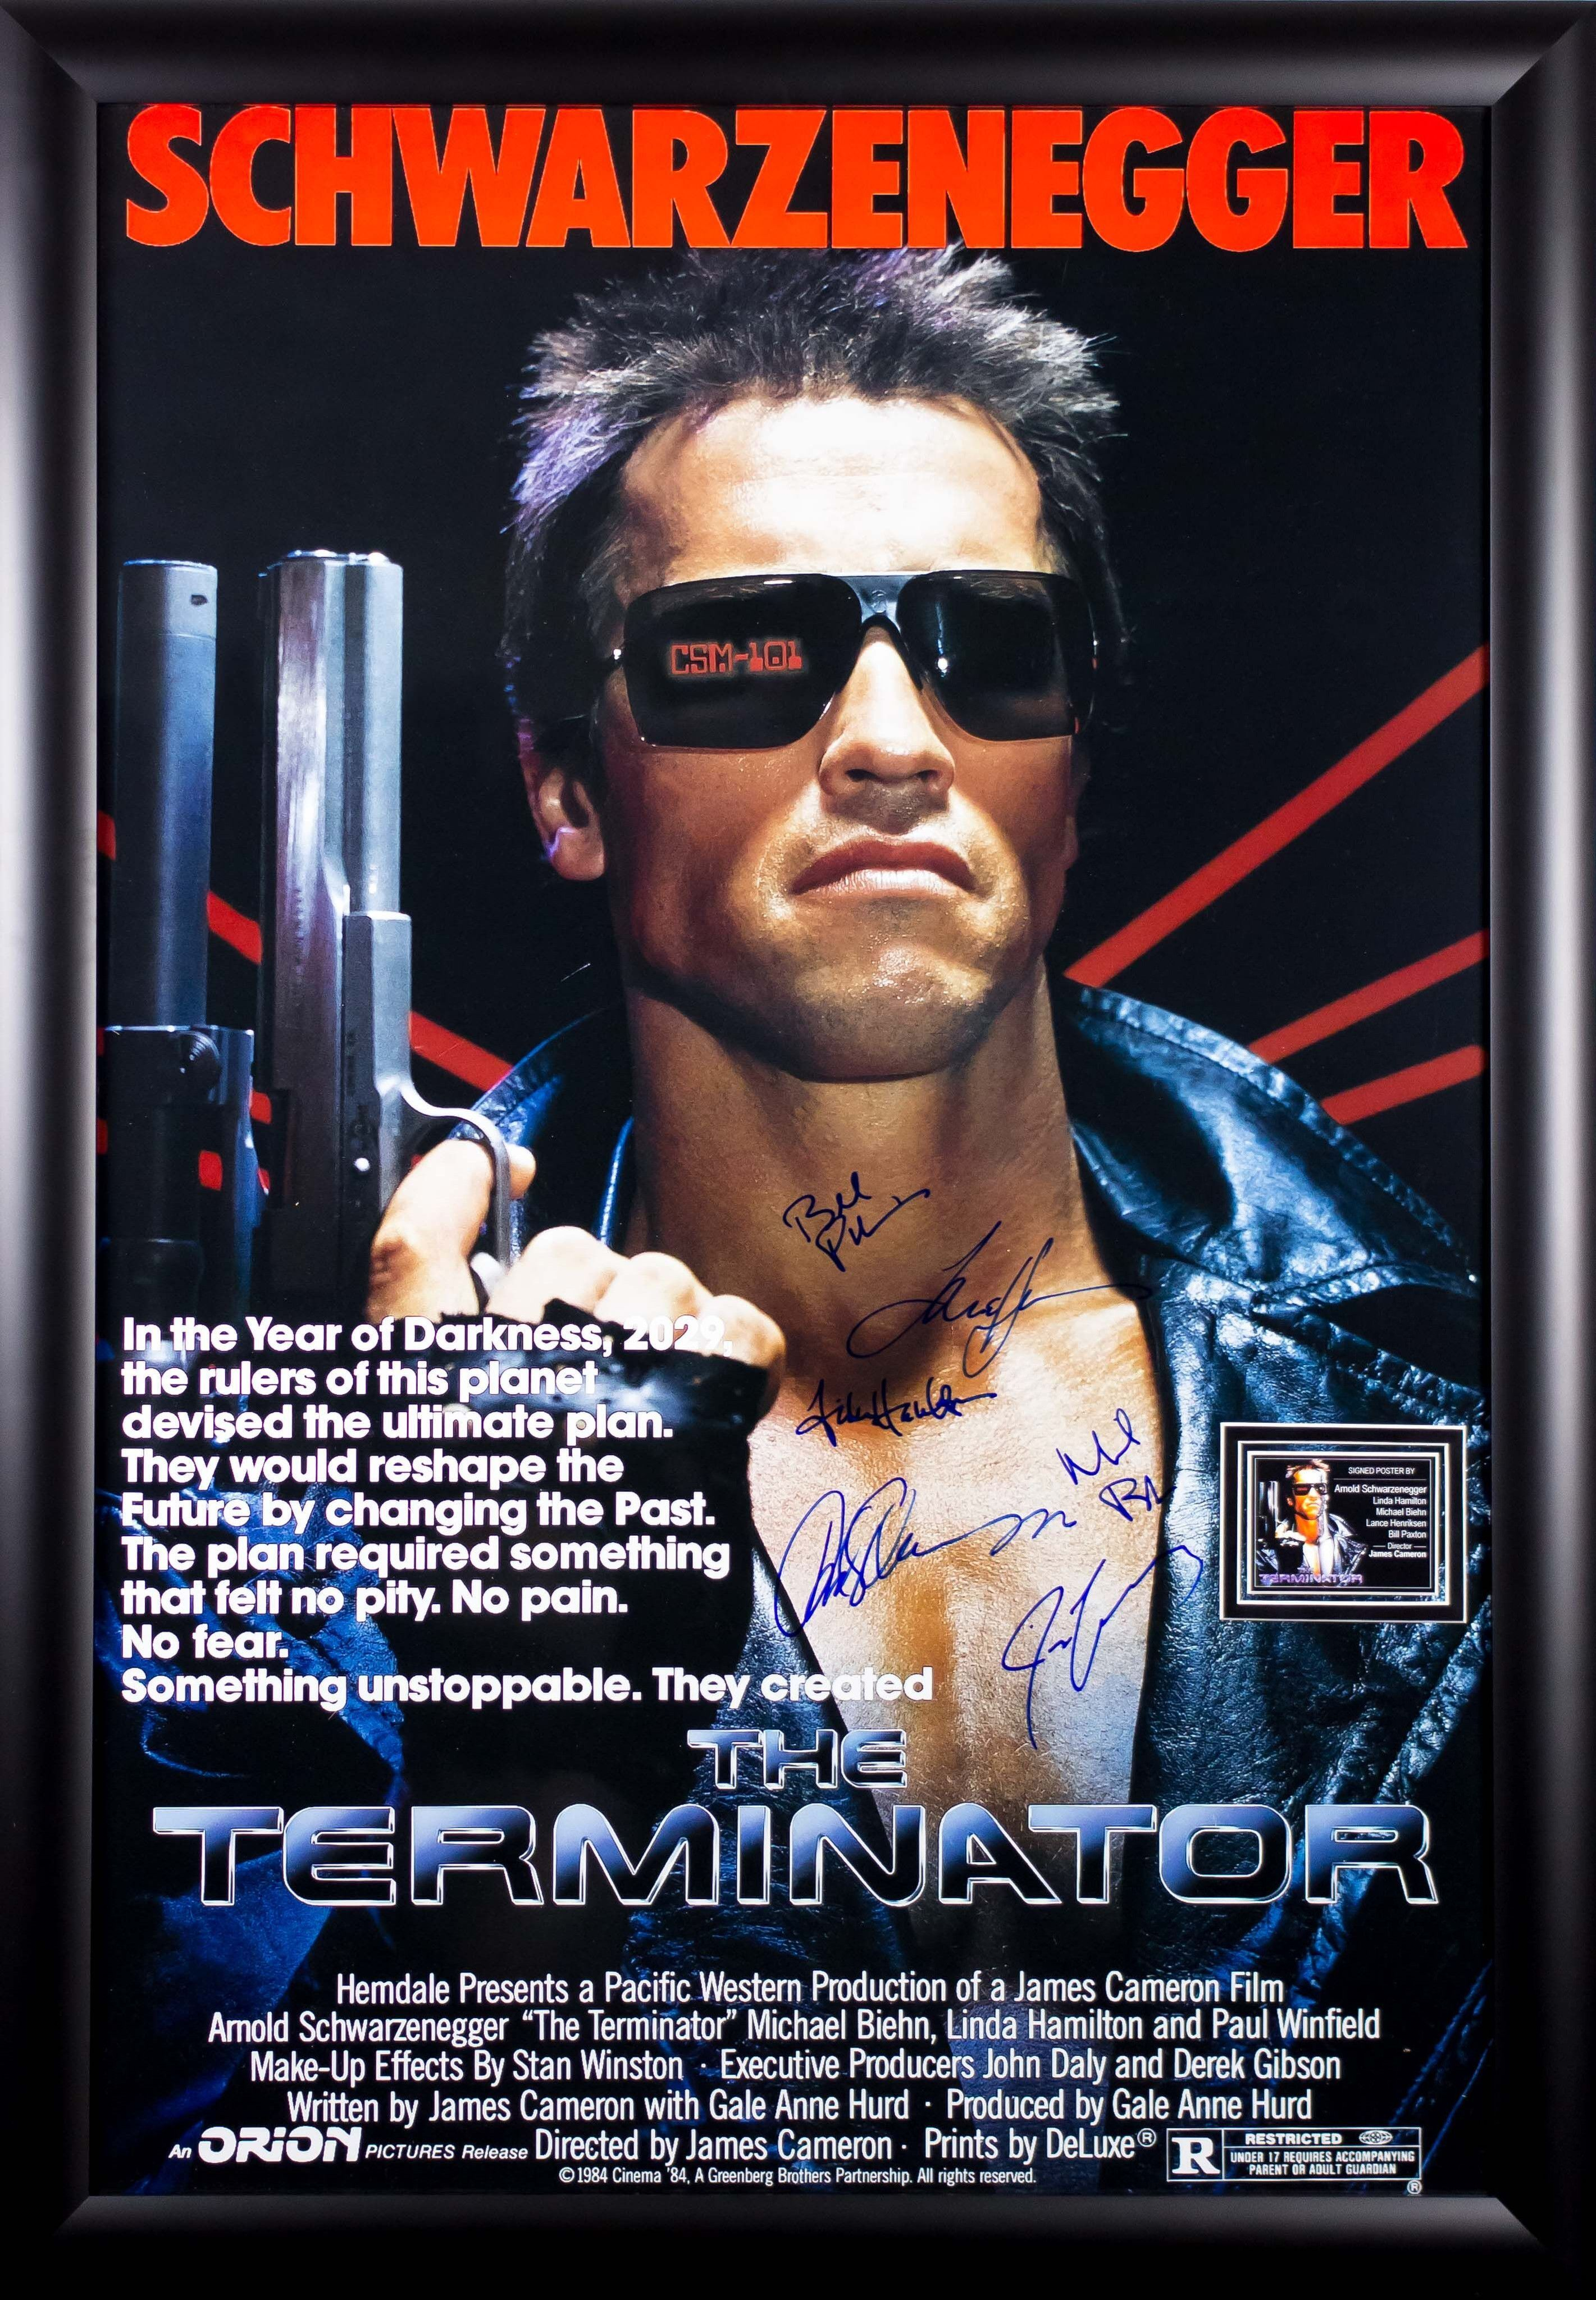 The Terminator Cast Signed Movie Poster 27x41 in Wood